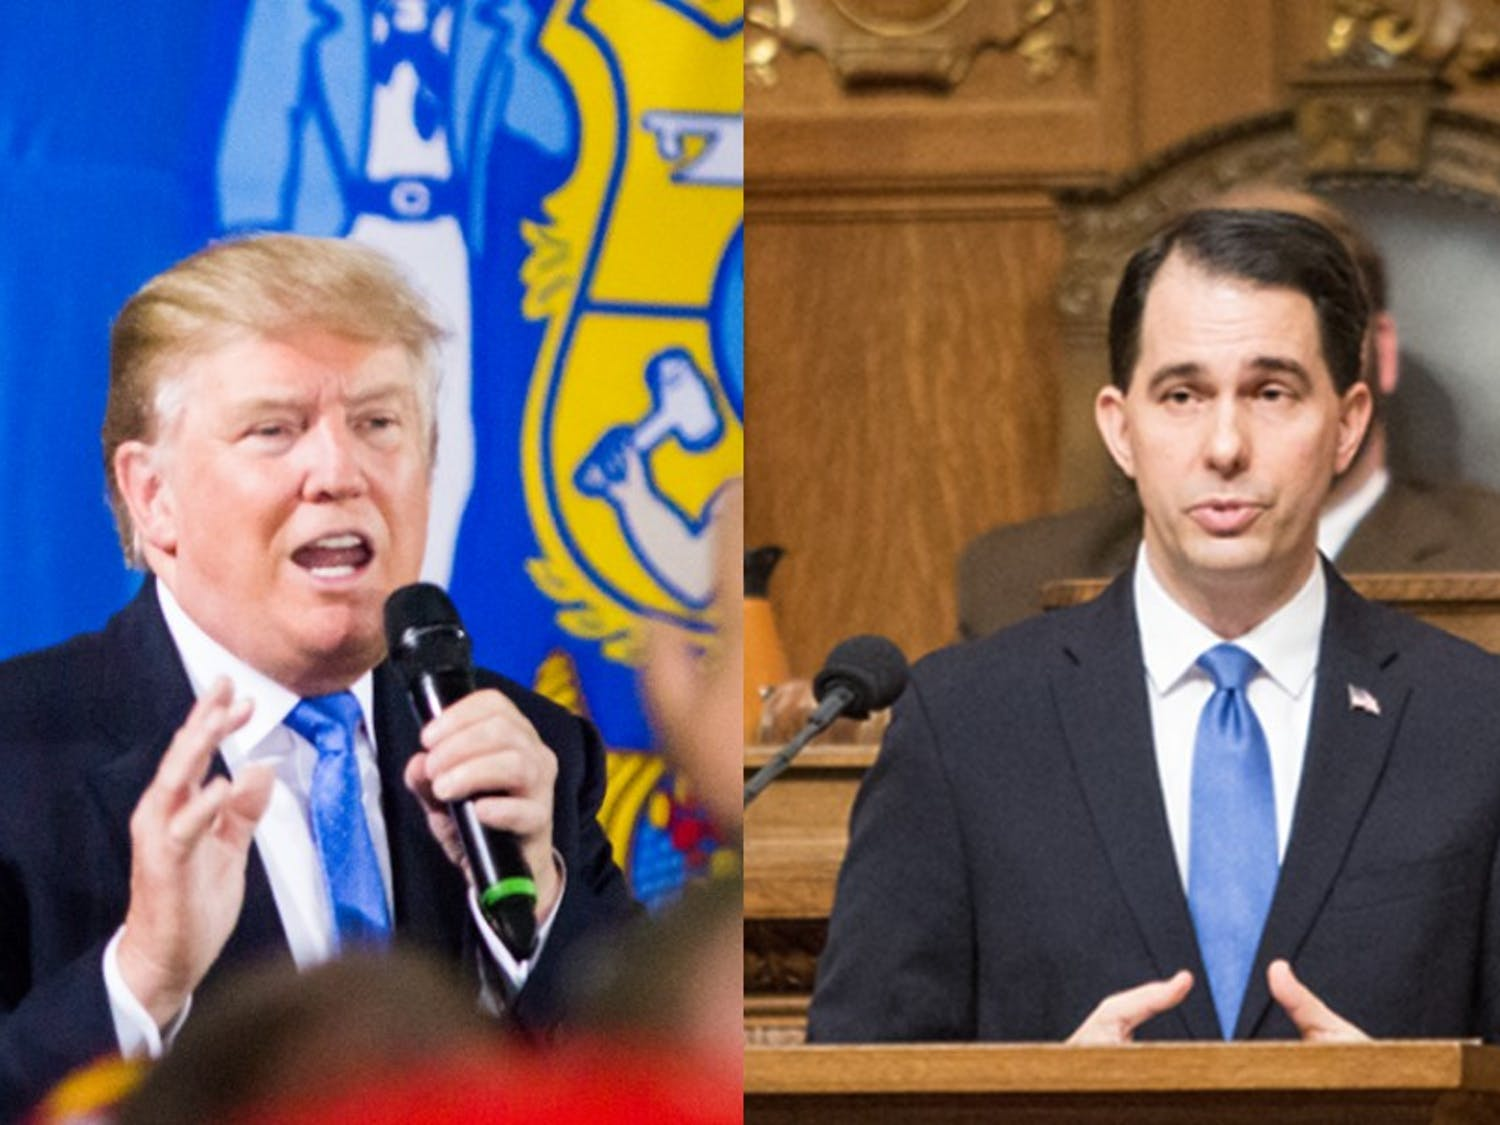 Gov. Scott Walker said Wednesday that he would support the eventual Republican nominee in the November election.